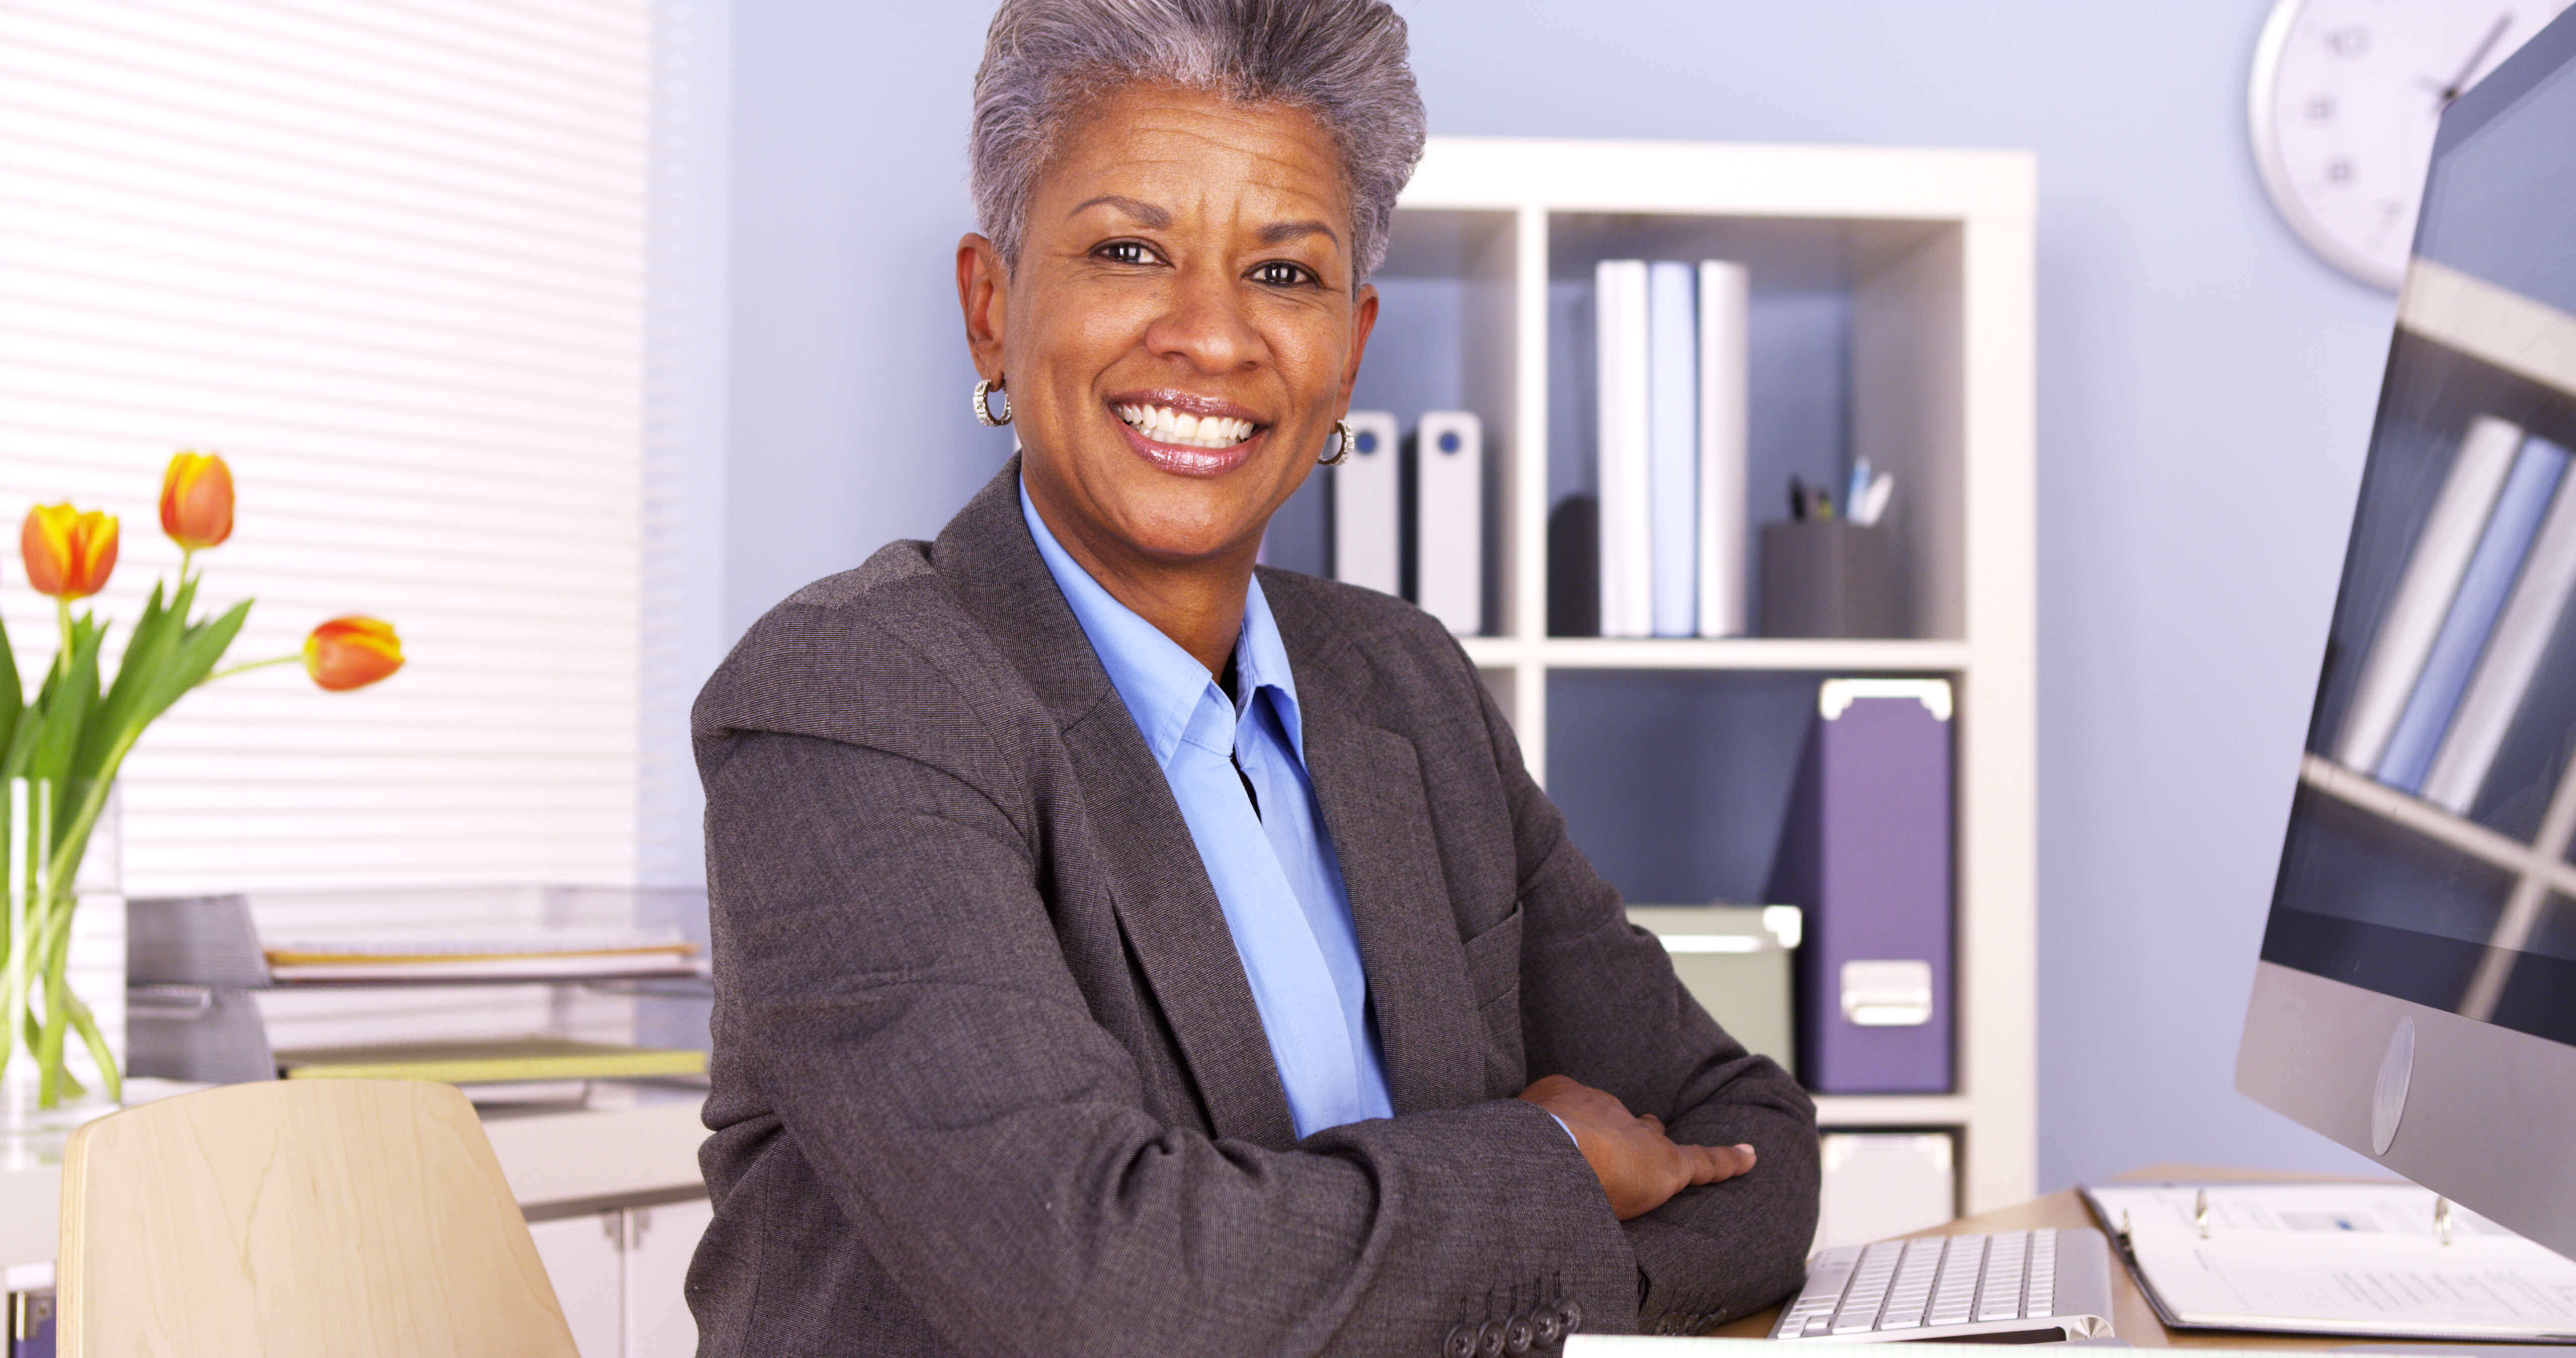 Certified Resume Writers | About Us | Our Value to You